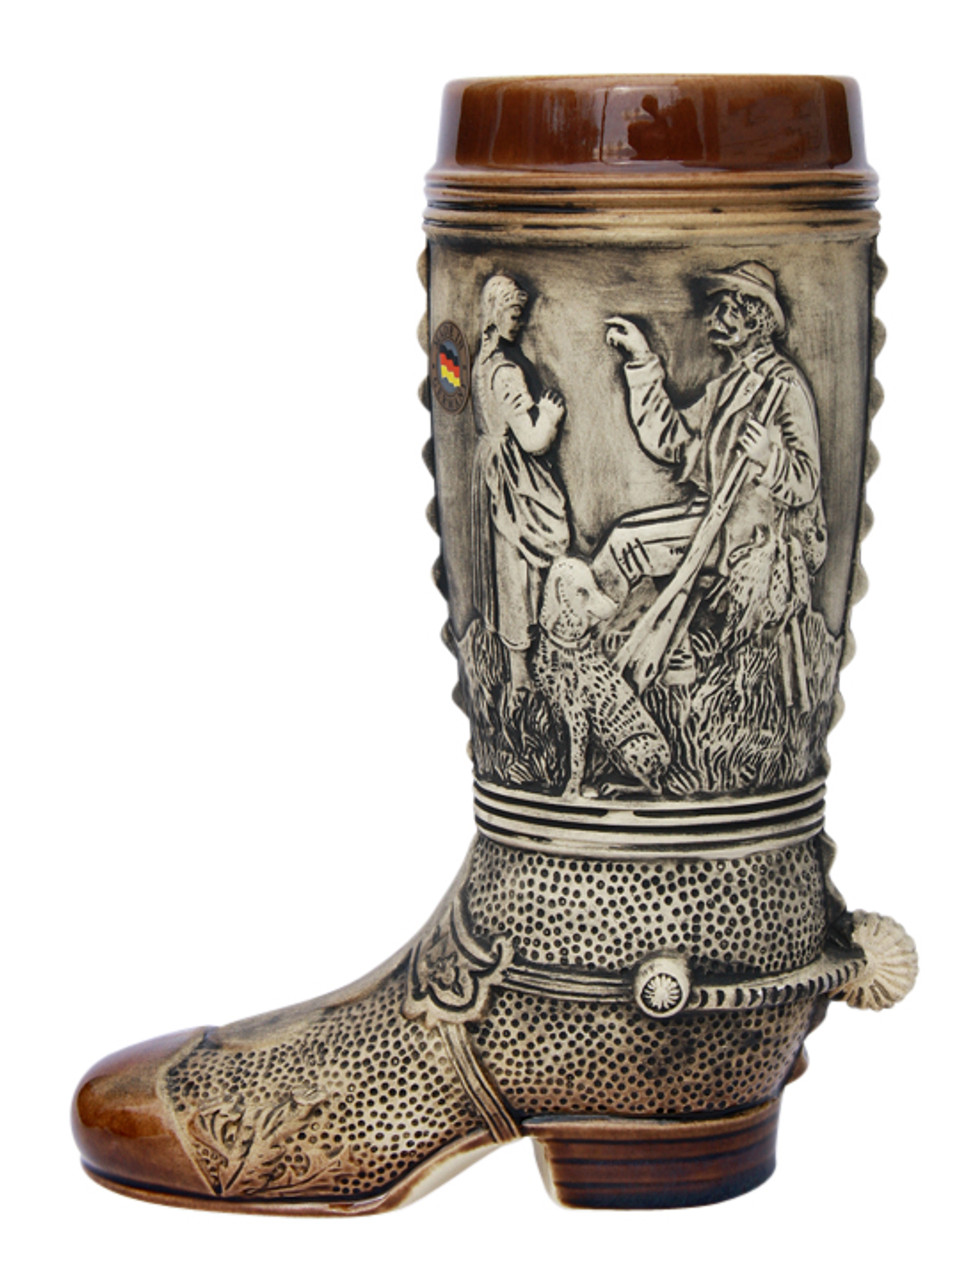 Ceramic Beer Boot with Rustic Finish and 3D Spur on the Heel